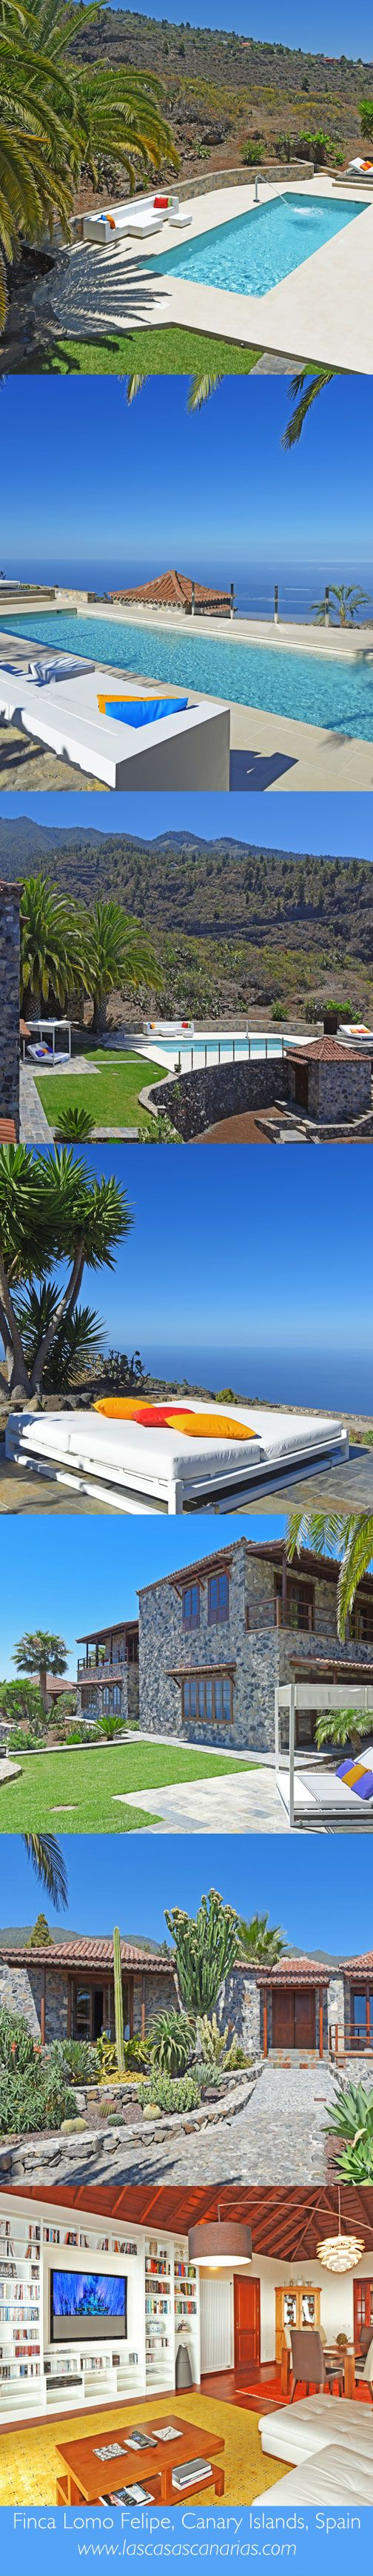 Luxury villa Finca Lomo Felipe, La Palma, Canary Islands, Spain  ✈✈✈ Don't miss your chance to win a Free Roundtrip Ticket to La Palma, Spain from anywhere in the world **GIVEAWAY** ✈✈✈ https://thedecisionmoment.com/free-roundtrip-tickets-to-europe-spain-la-palma/